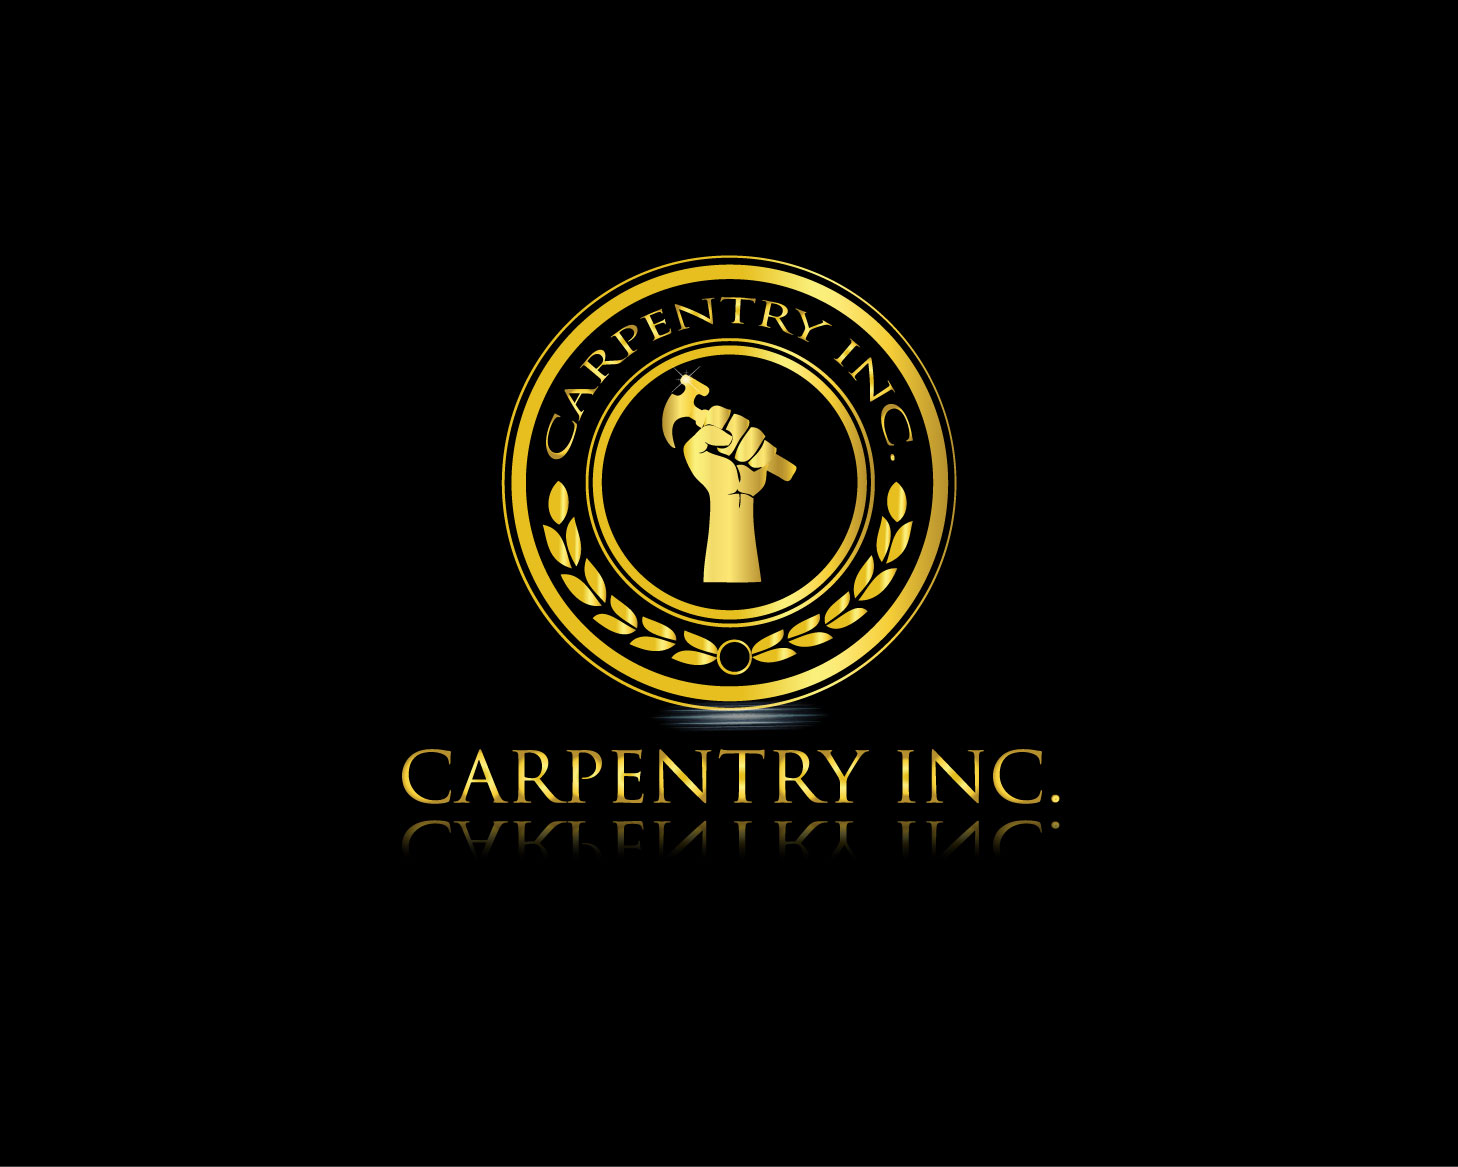 Logo Design by Rowel Samson - Entry No. 41 in the Logo Design Contest Creative Logo Design for Carpentry inc..